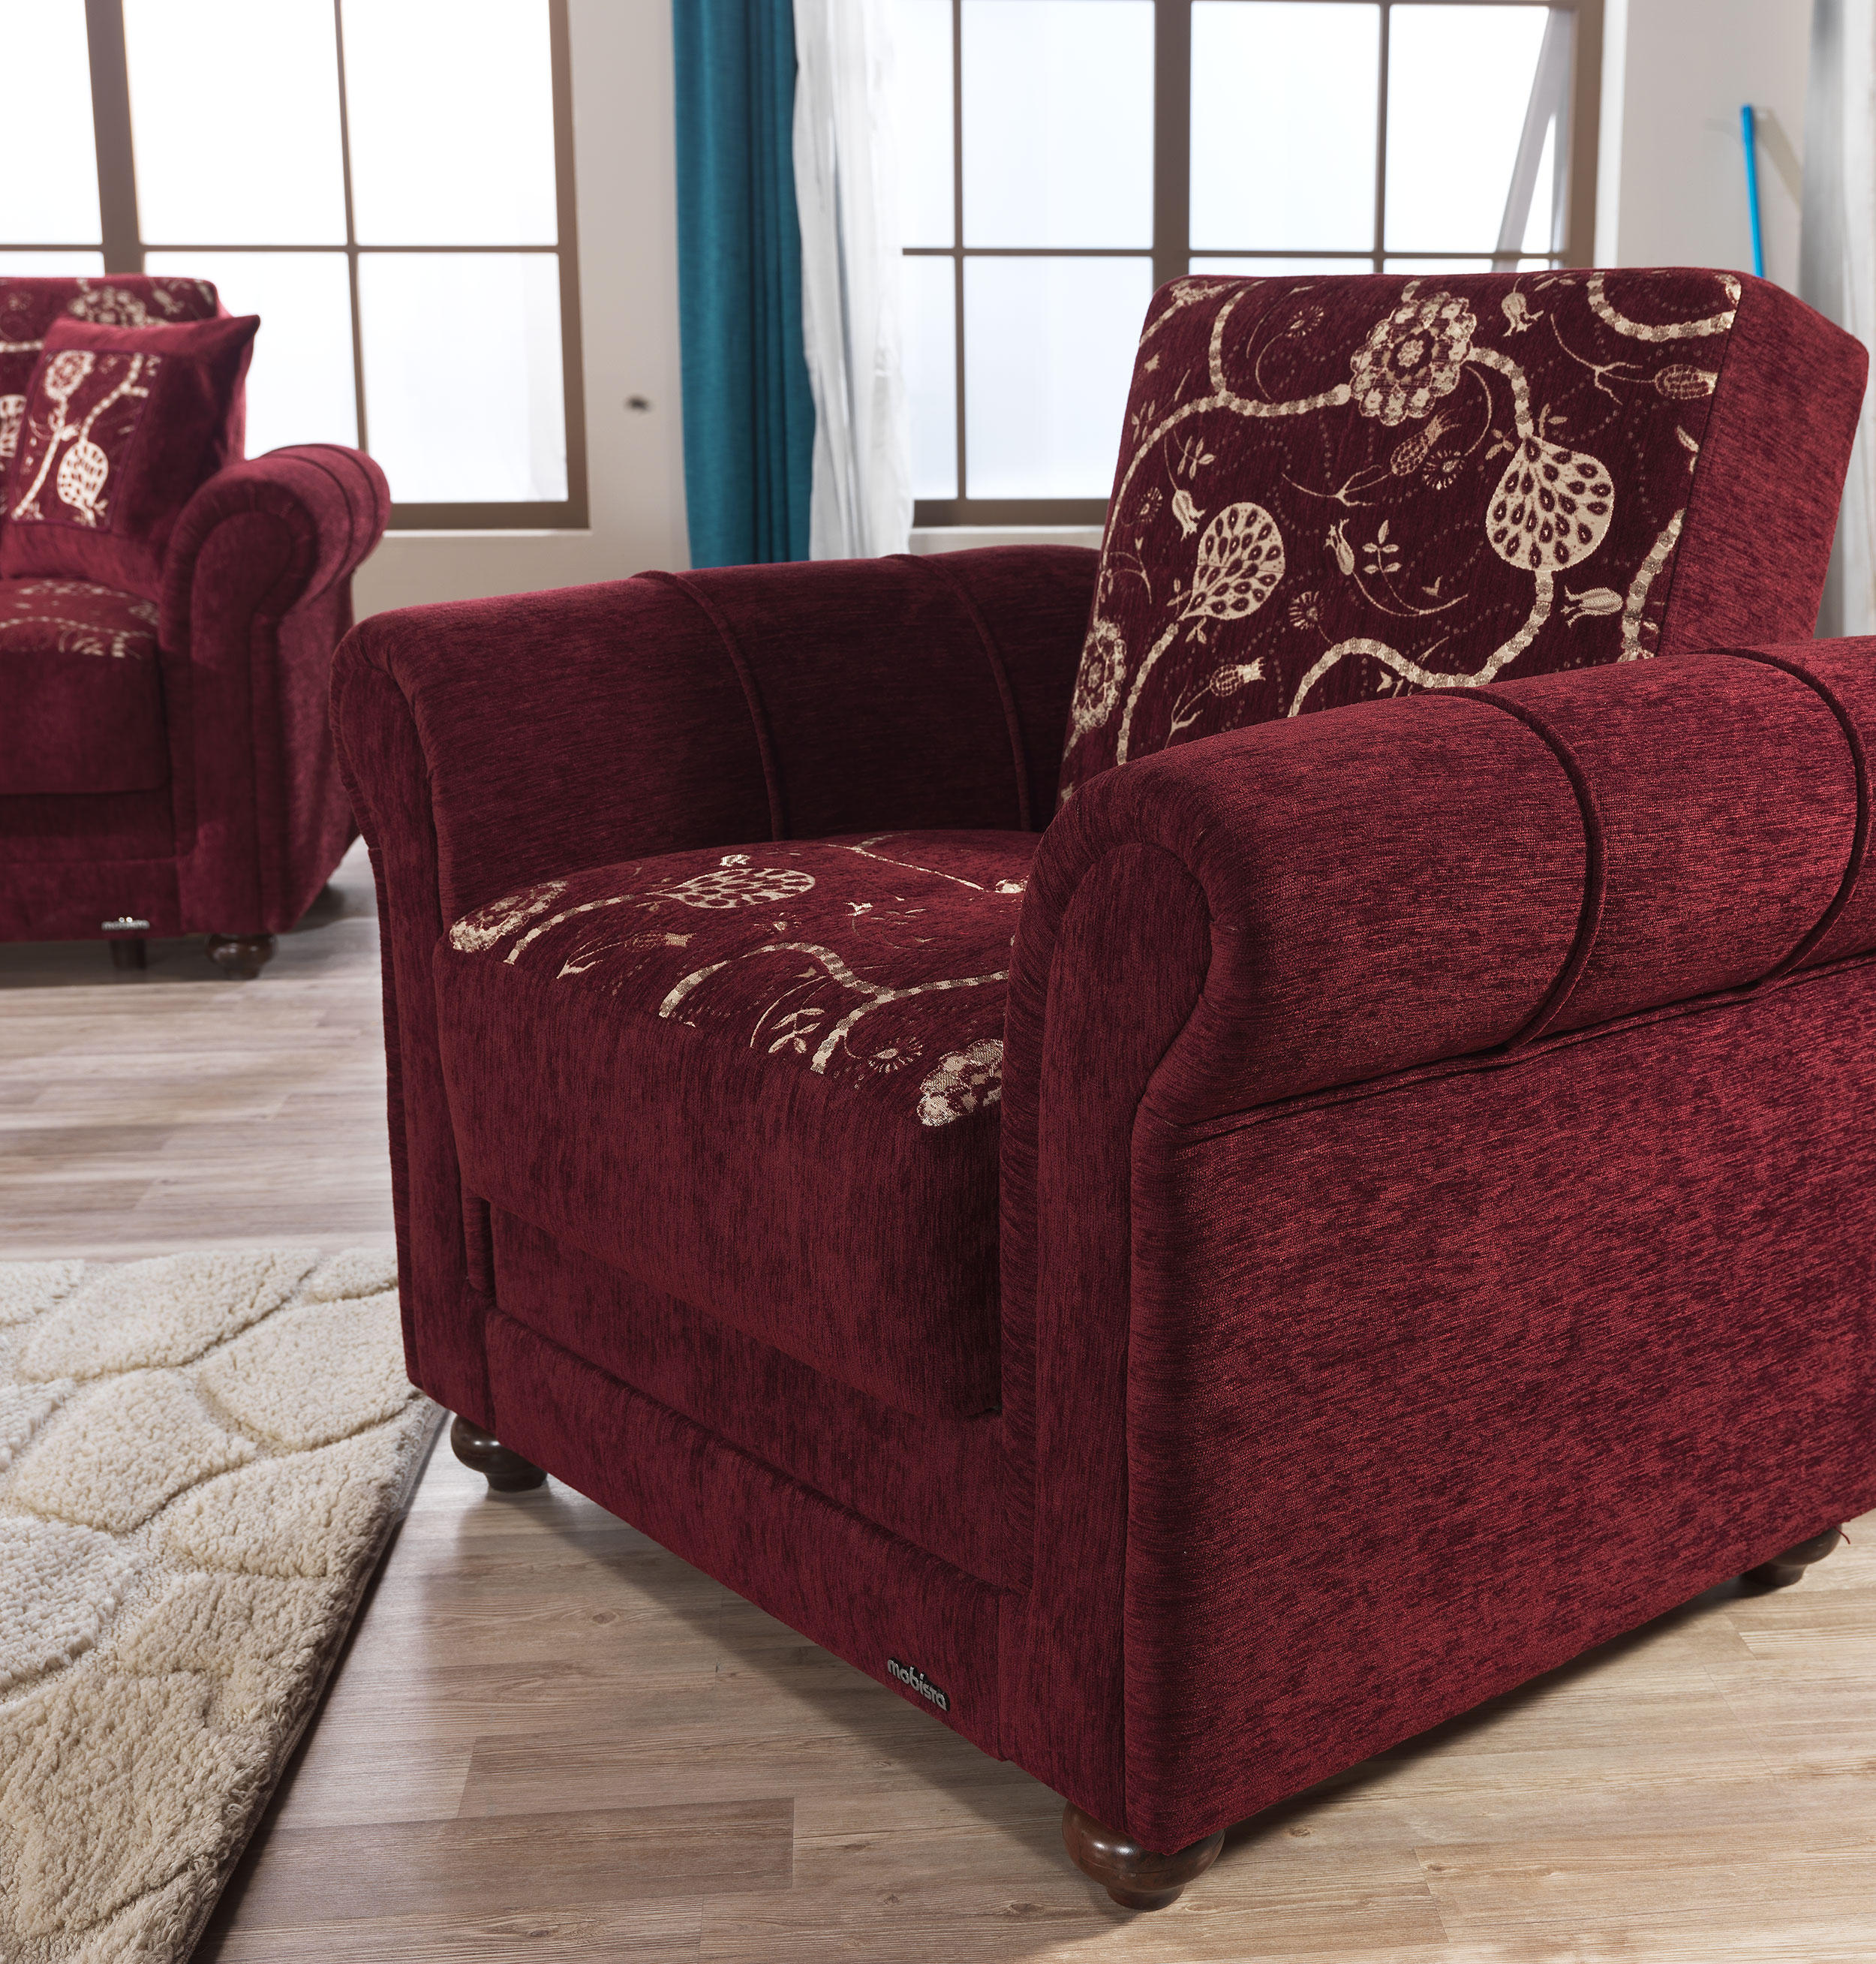 living sofa furniture couch target oversized room chair surefit fit stunning decor couches covers ottoman recliner sure minimalist design cover slipcover for armchair slipcovers burgundy